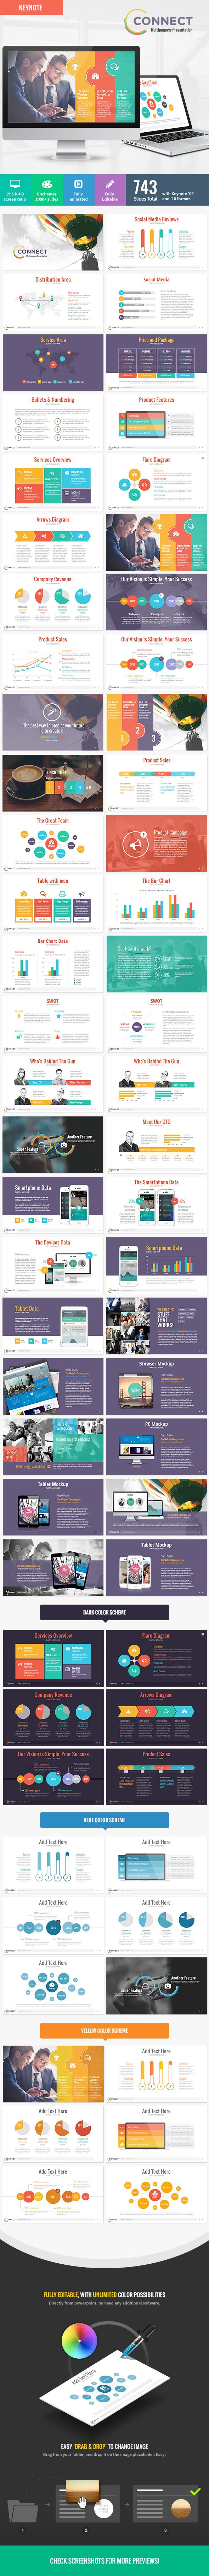 Connect - Modern Keynote Template | Download: http://graphicriver.net/item/connect-modern-keynote-template/8975842?ref=ksioks